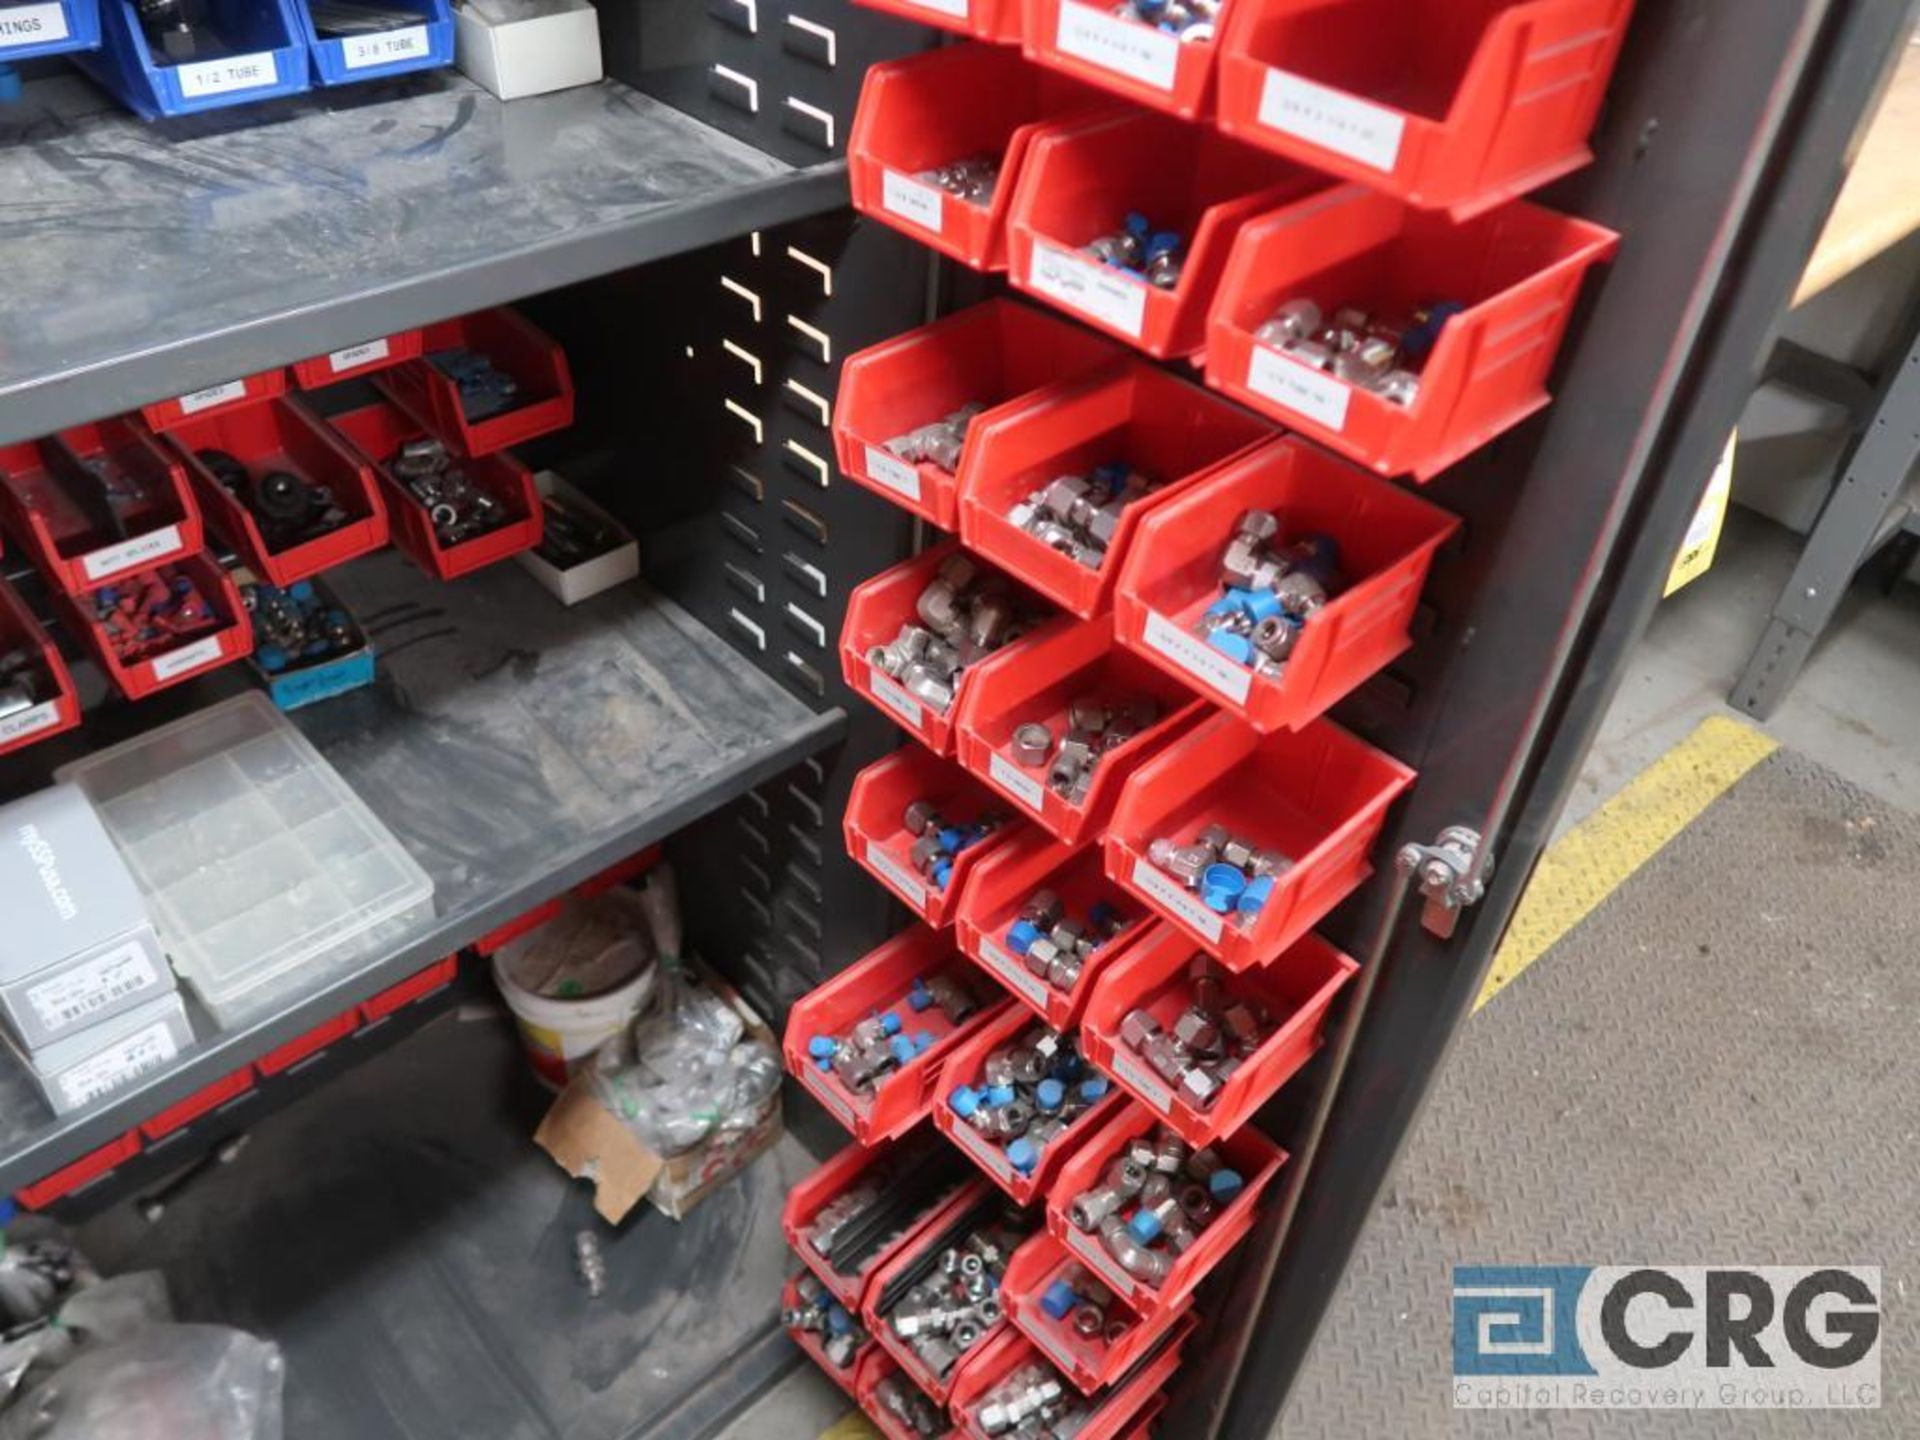 Metal 2 door cabinet with trays mounted inside-includes contents (Inside Shop-496 Dock Area) - Image 2 of 3